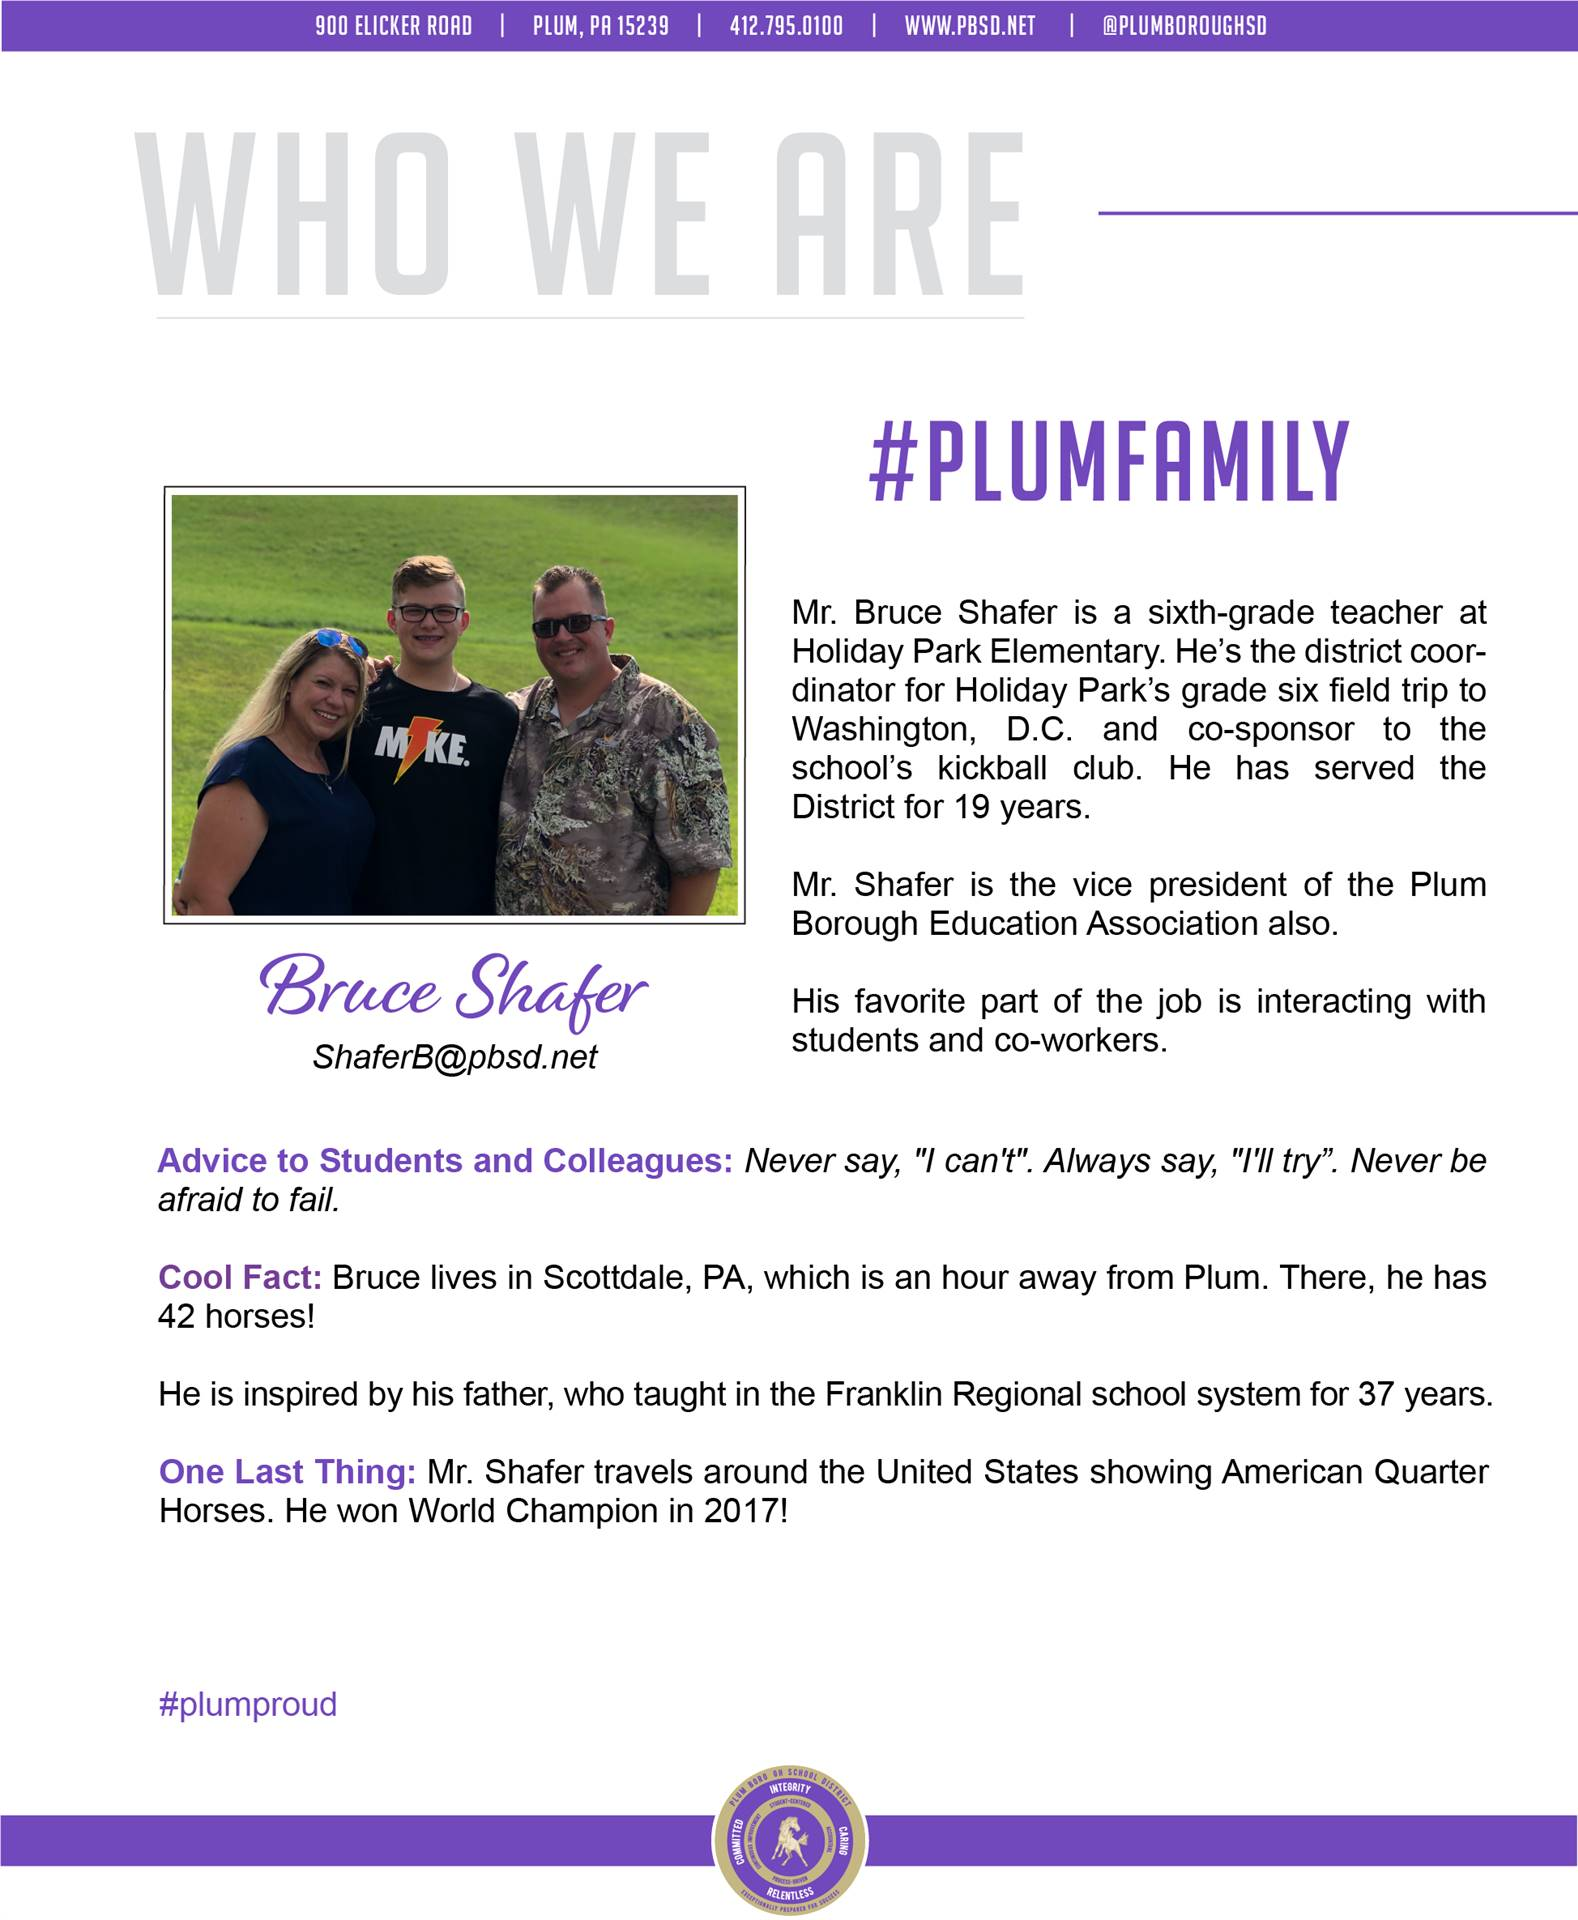 Who We Are Wednesday features Bruce Shafer.